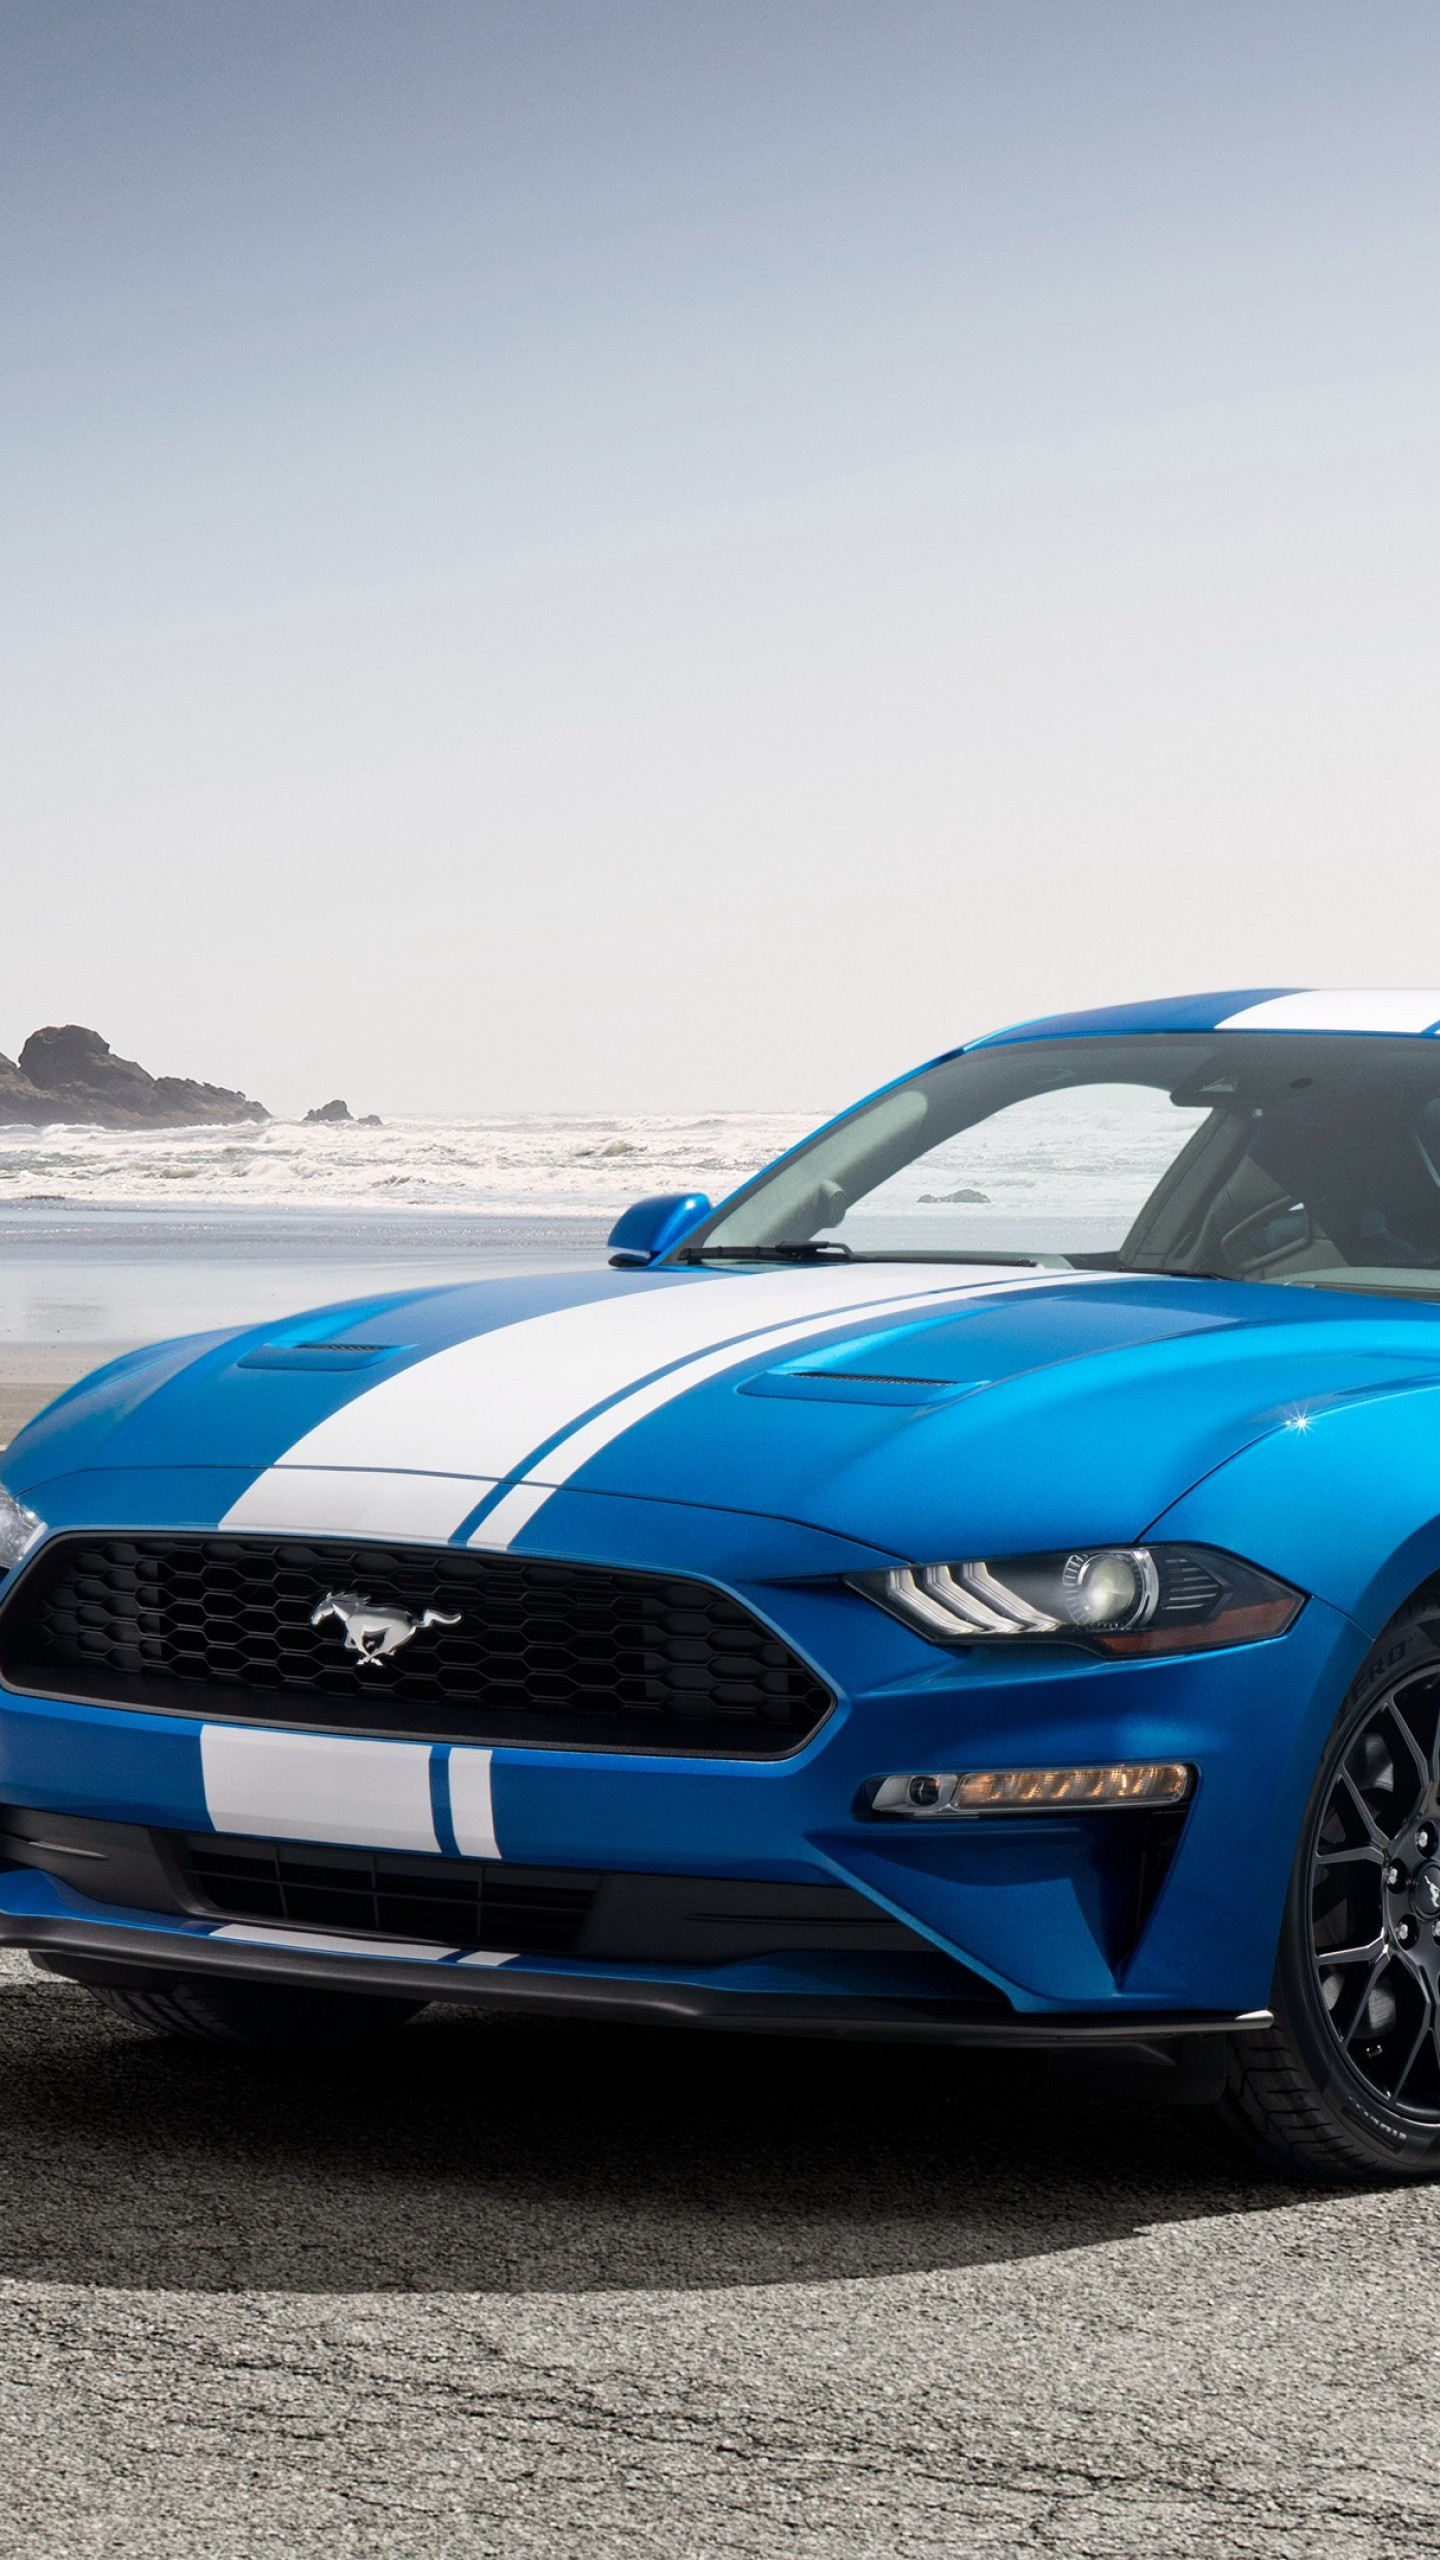 Wallpaper Ford Mustang, muscle car, blue, 2019 Cars, 4K ...